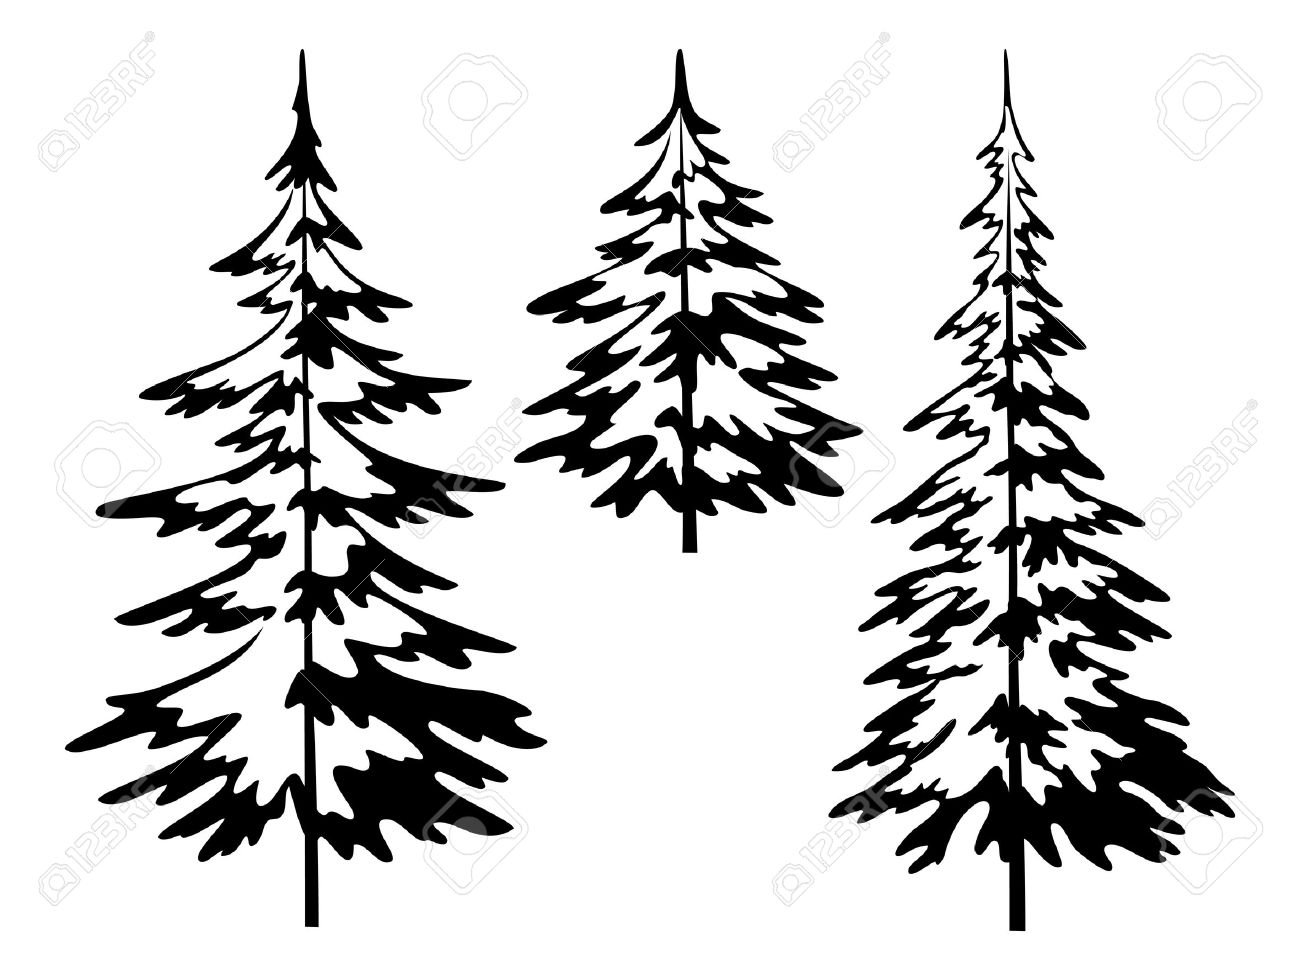 Christmas tree drawing outline - Christmas Tree Outline Christmas Fir Trees Symbolical Pictogram Black Contours Isolated On White